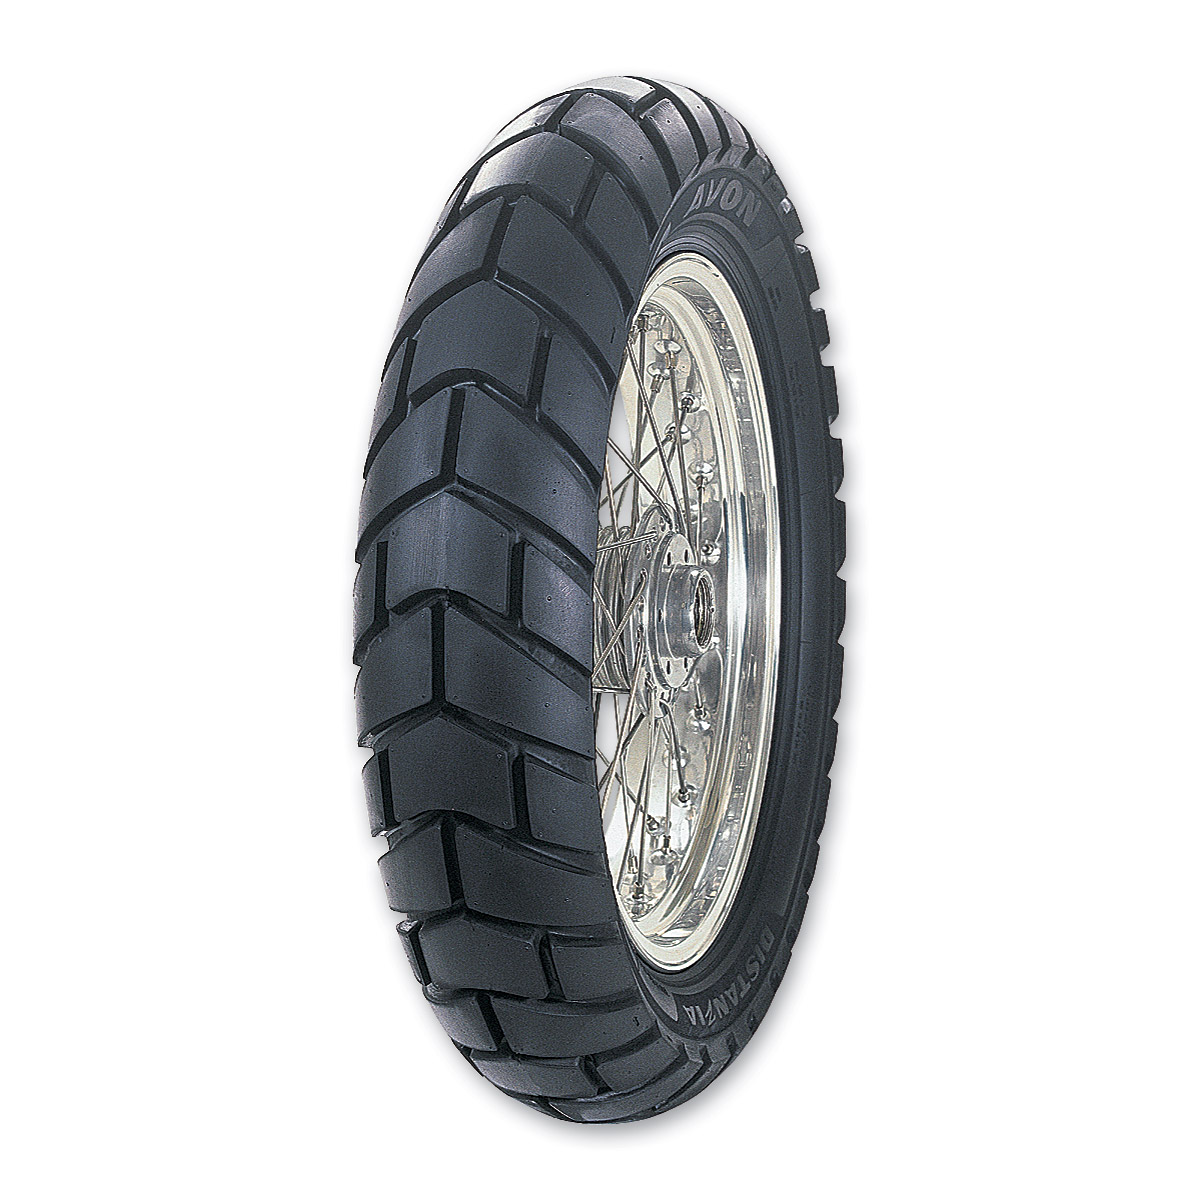 Avon Distanzia AM44 140/80HR-17 Rear Tire